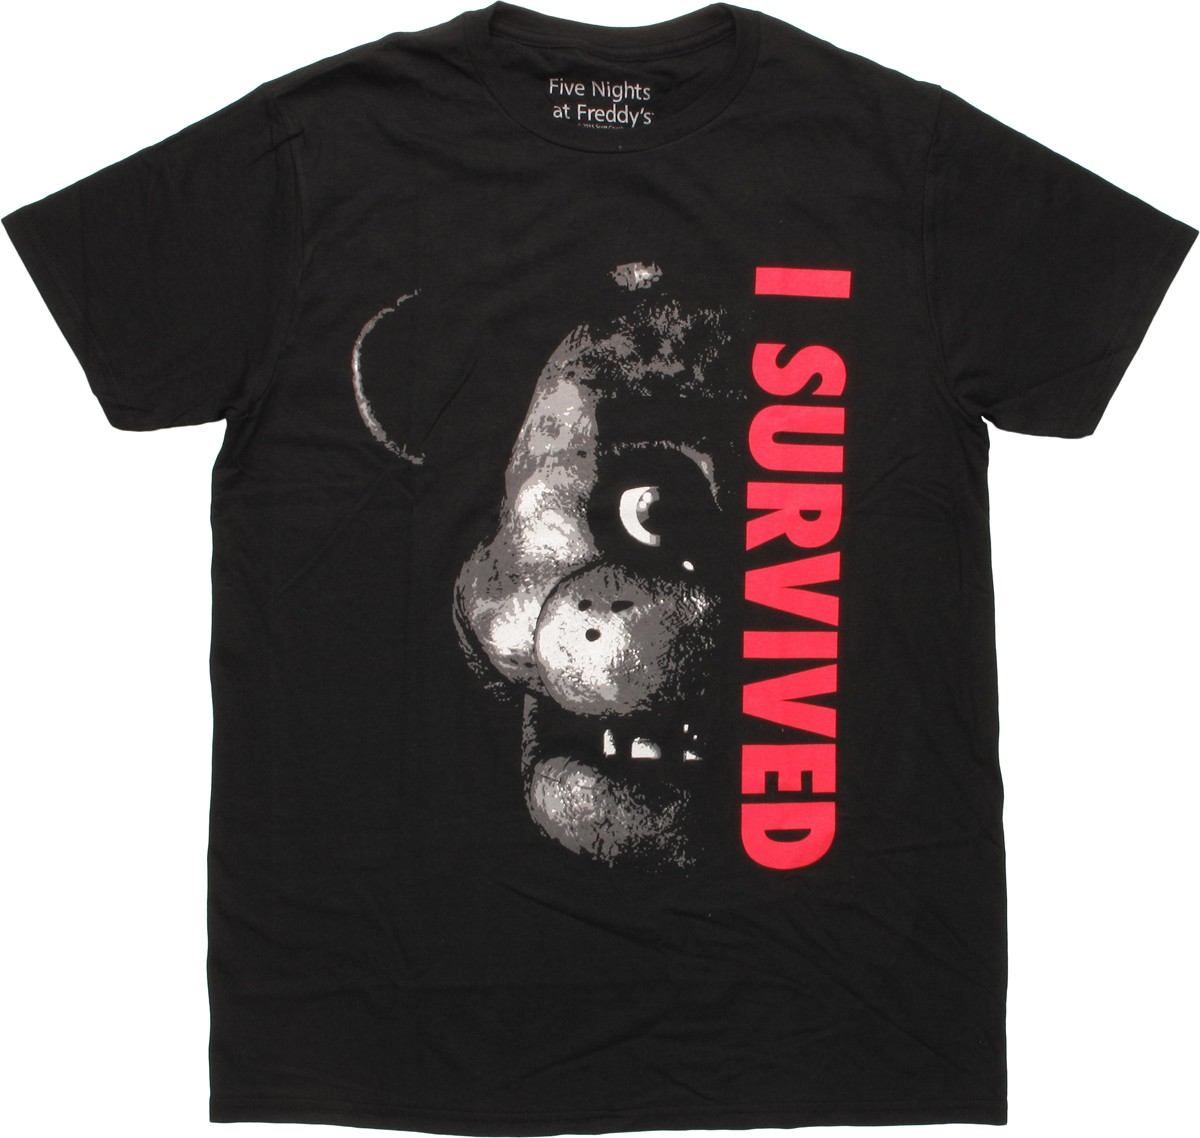 Five nights at freddy s i survived t shirt 5 jpg